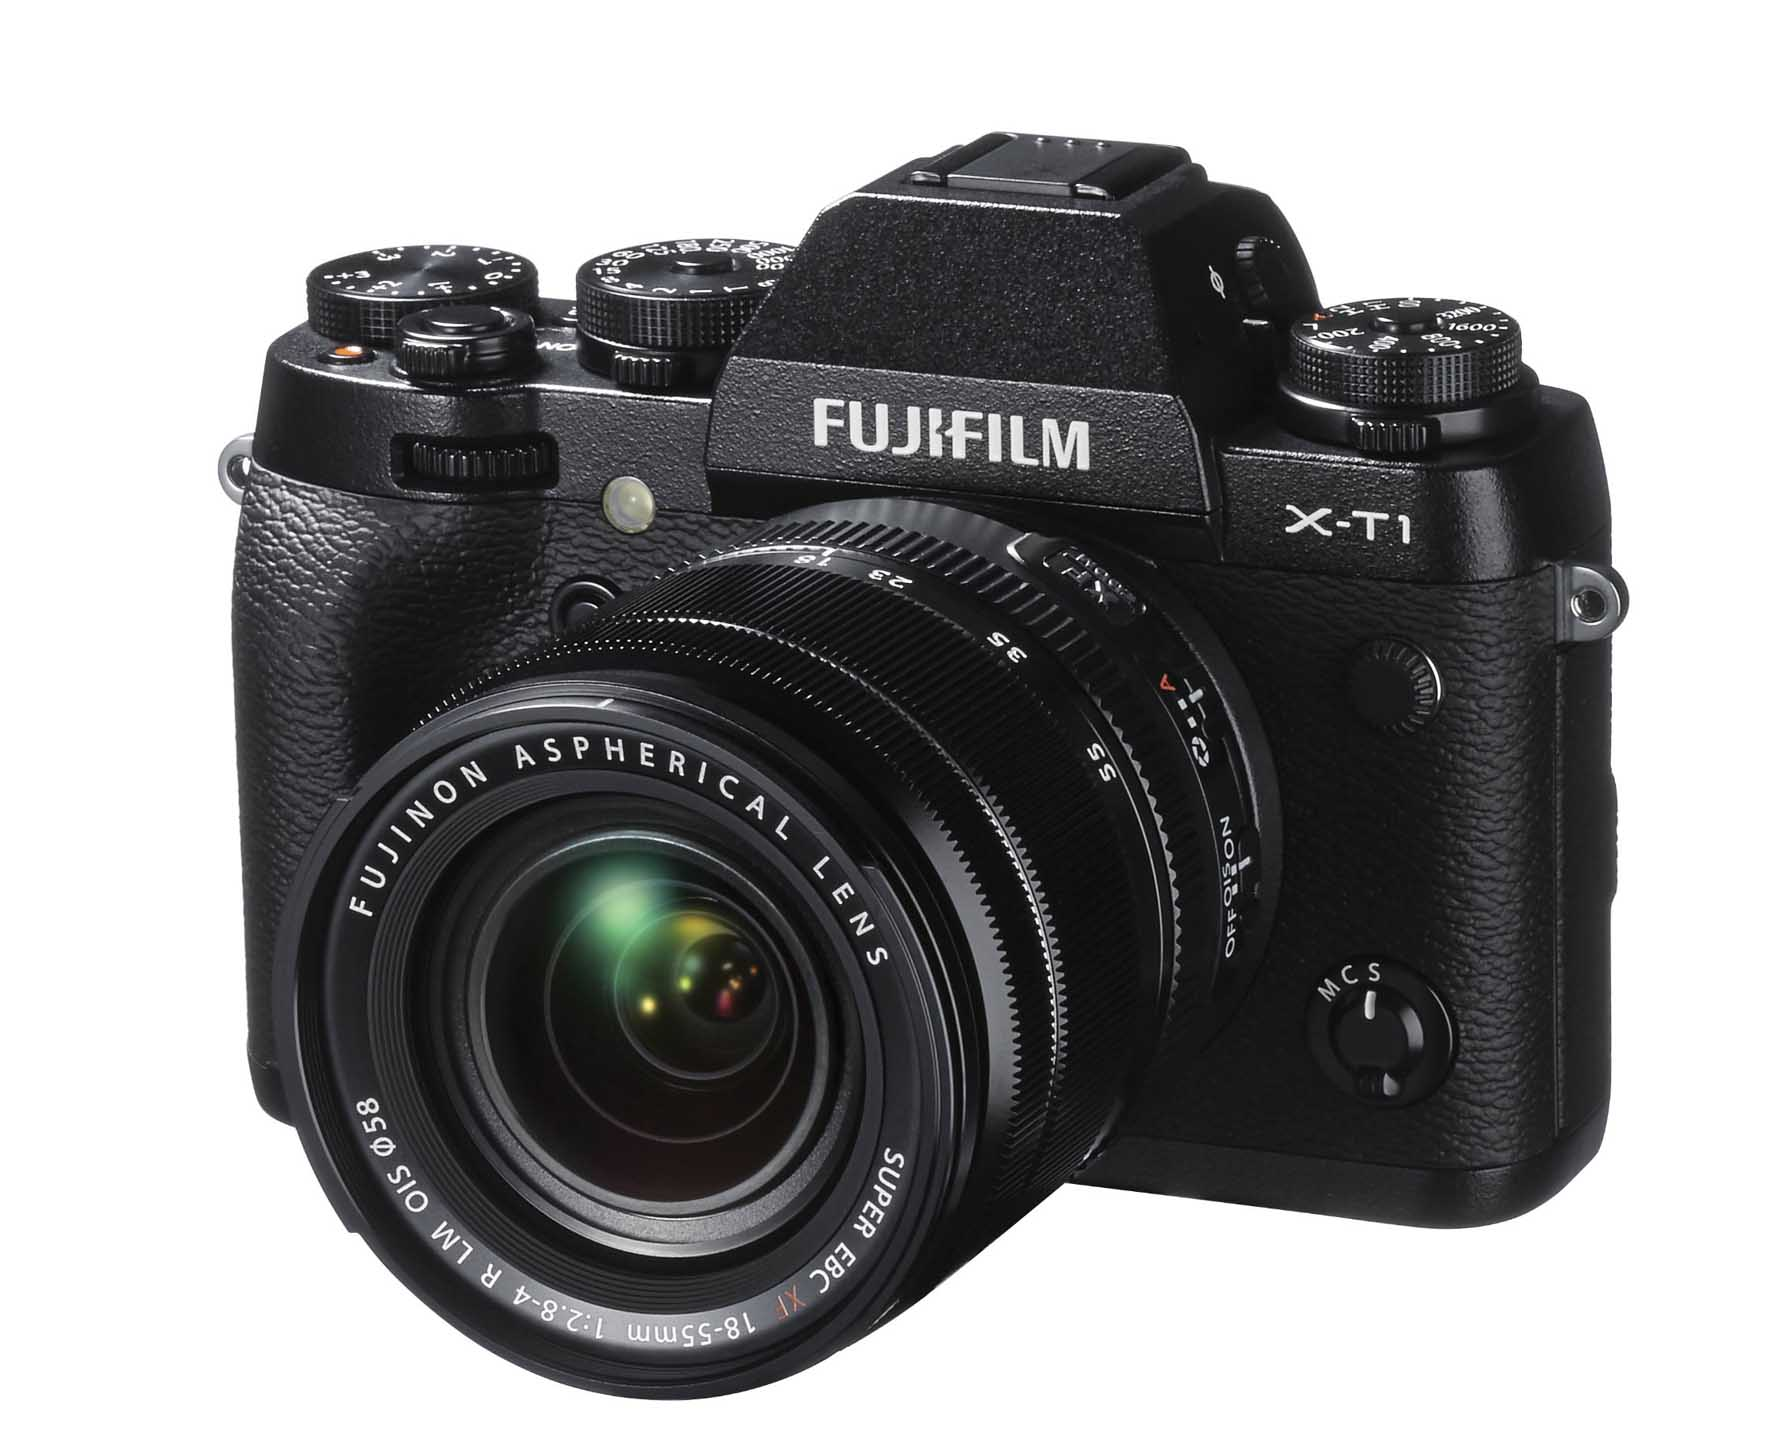 Fujifilm-digital-camera-XT1-18-55-mm-ilnordest